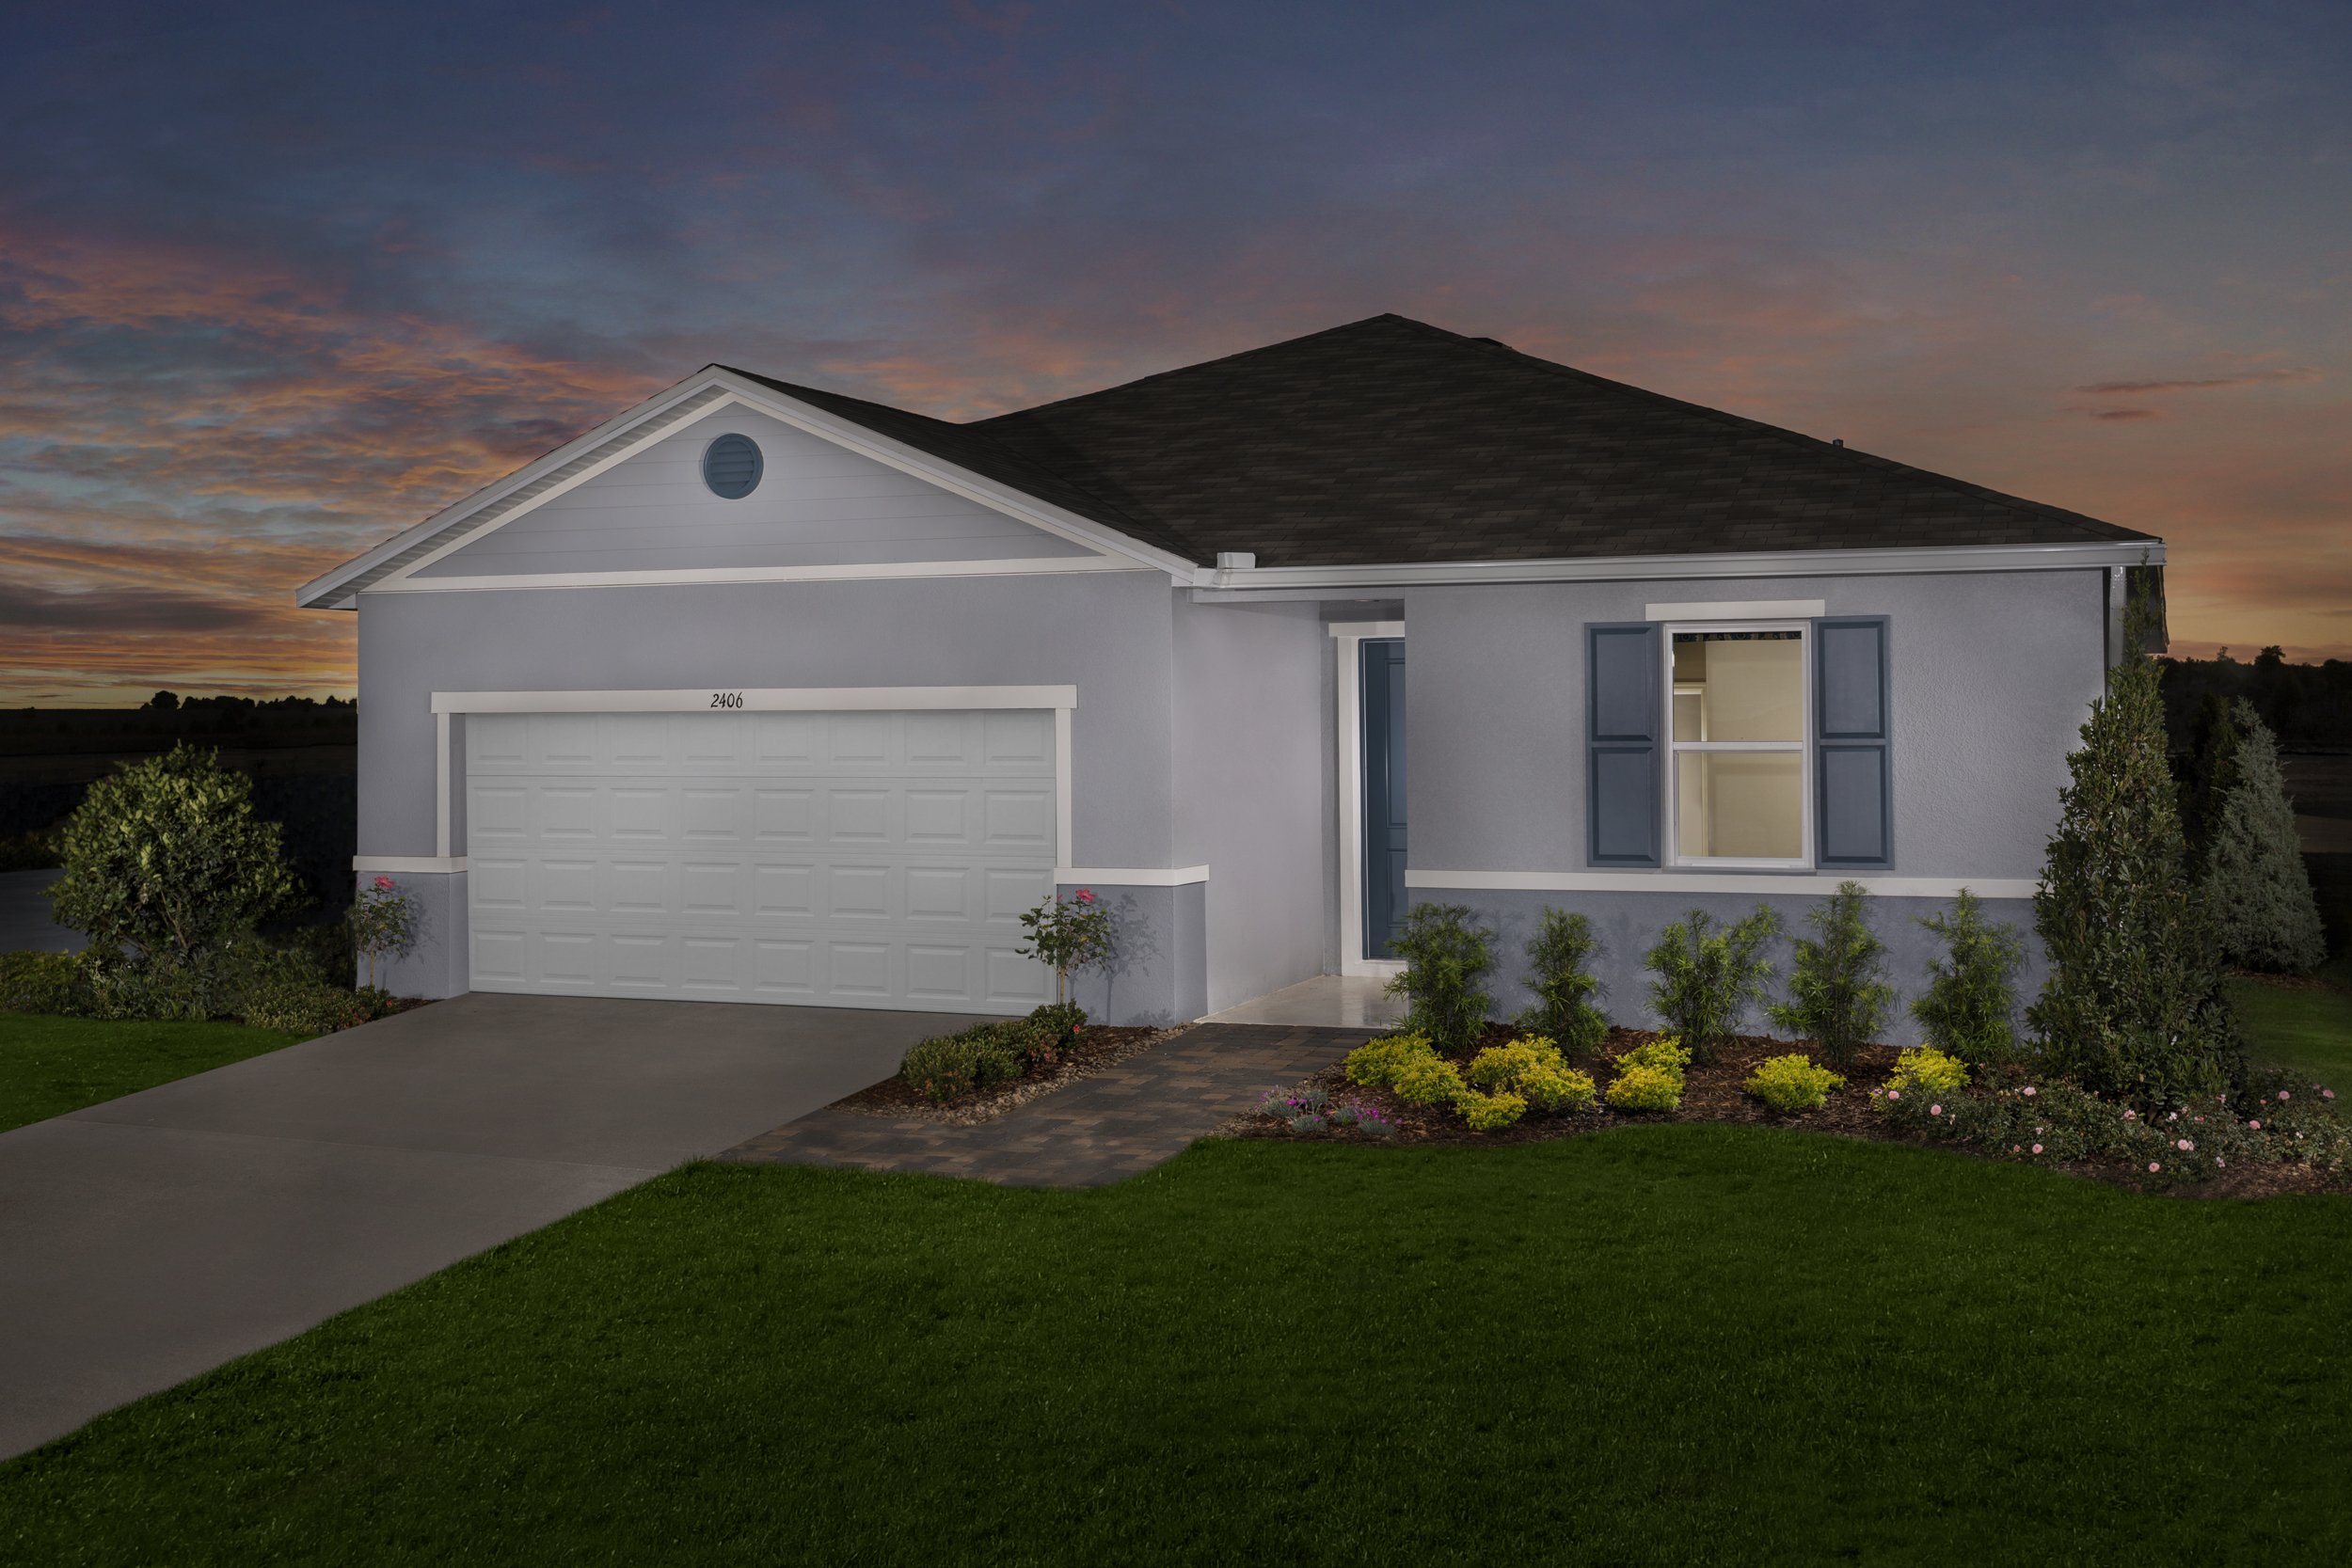 Kb Home Announces The Grand Opening Of Sawgrass Bay In Clermont